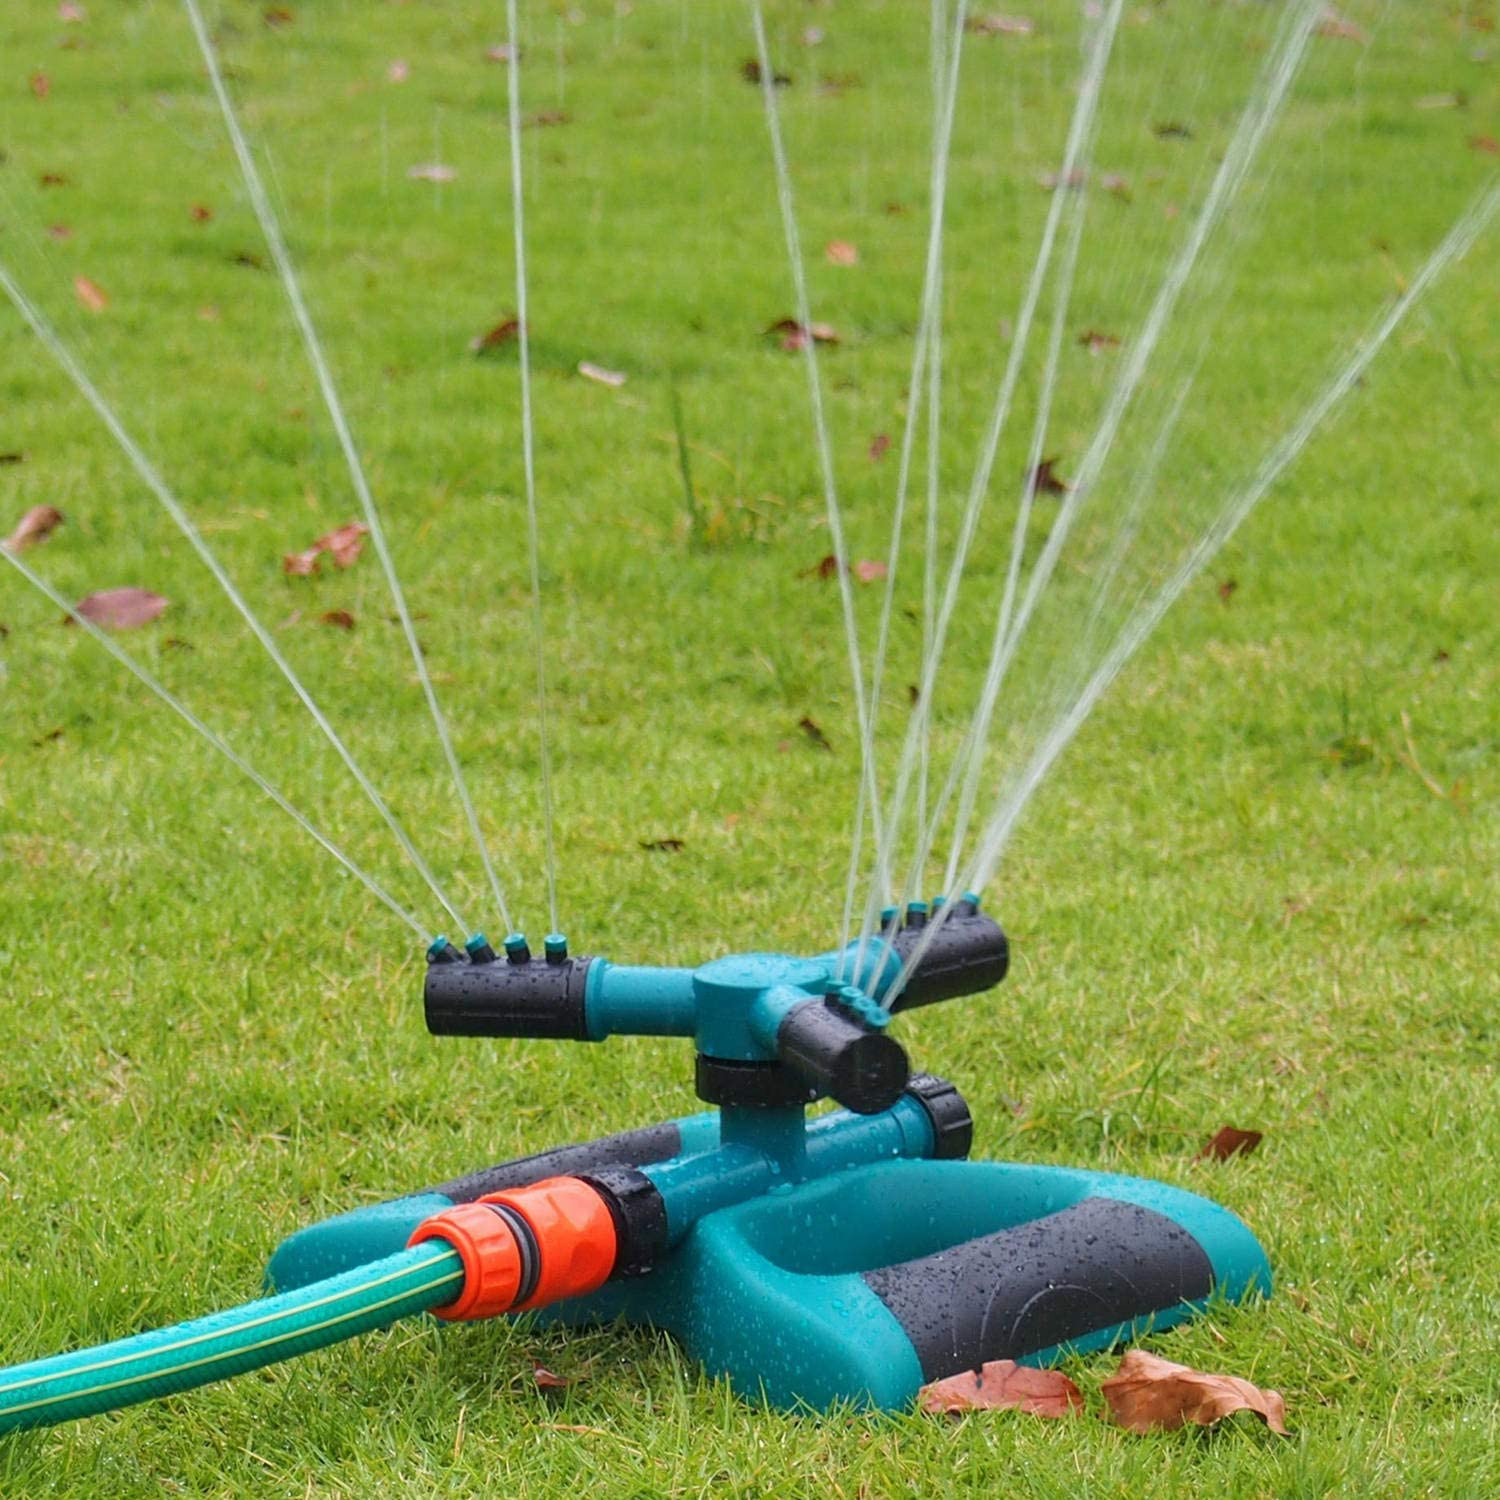 Automatic Lawn Water Sprinkler 360 Degree 3 Arm Rotating Sprinkler System for Large Lawn Area with Tuneway Garden Sprinkler